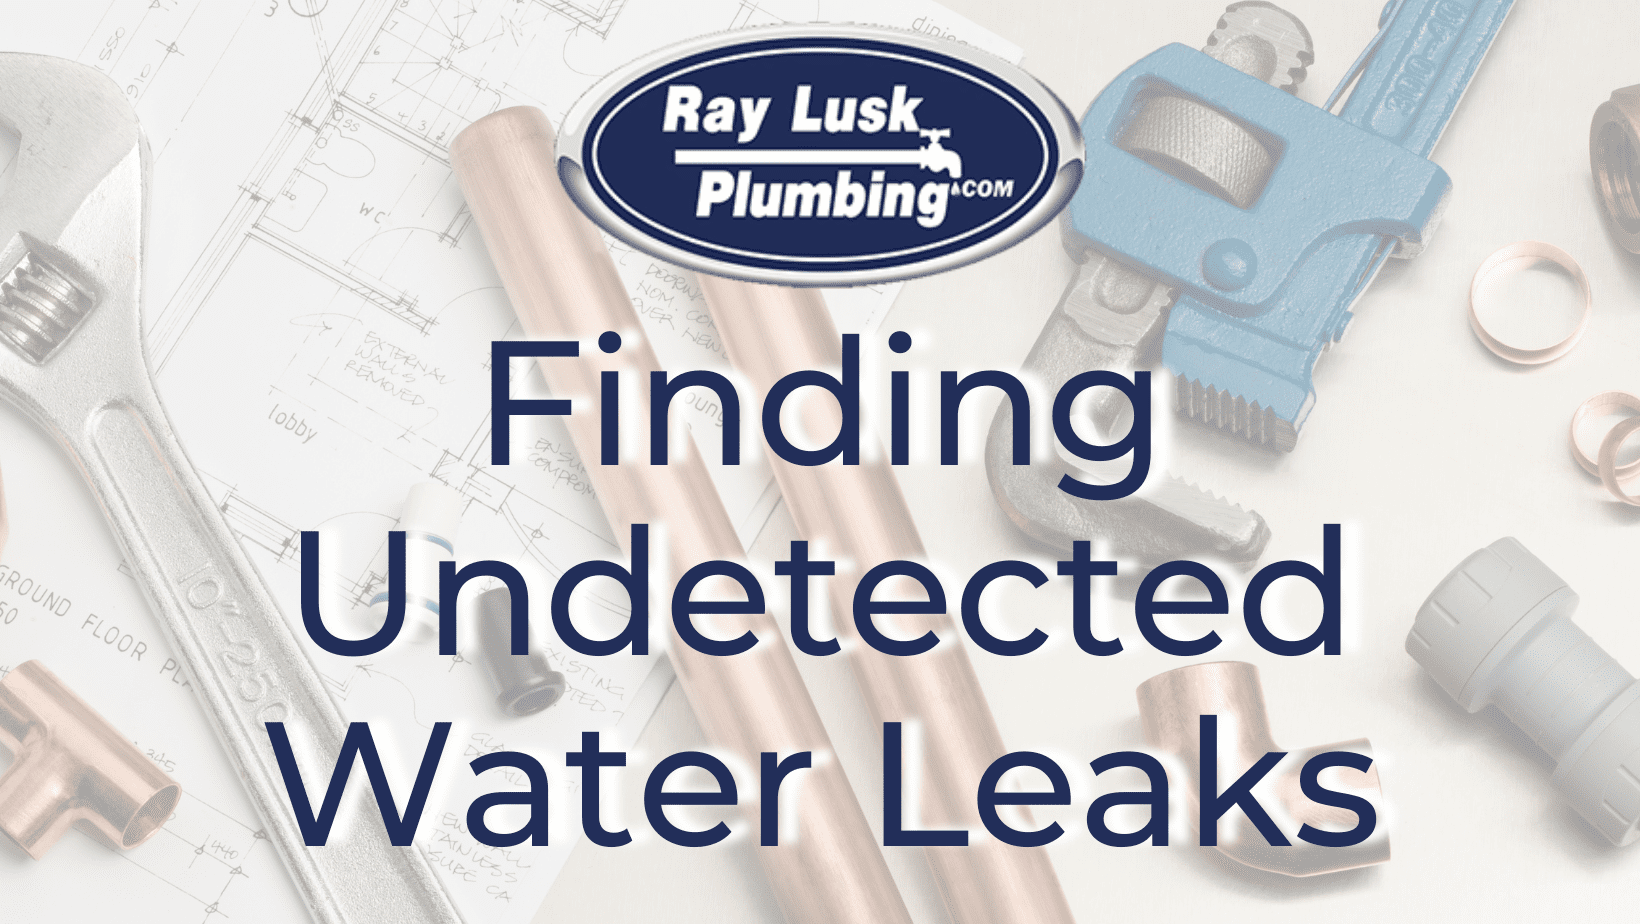 """Image text reads: """"Finding Undetected Water Leaks"""""""